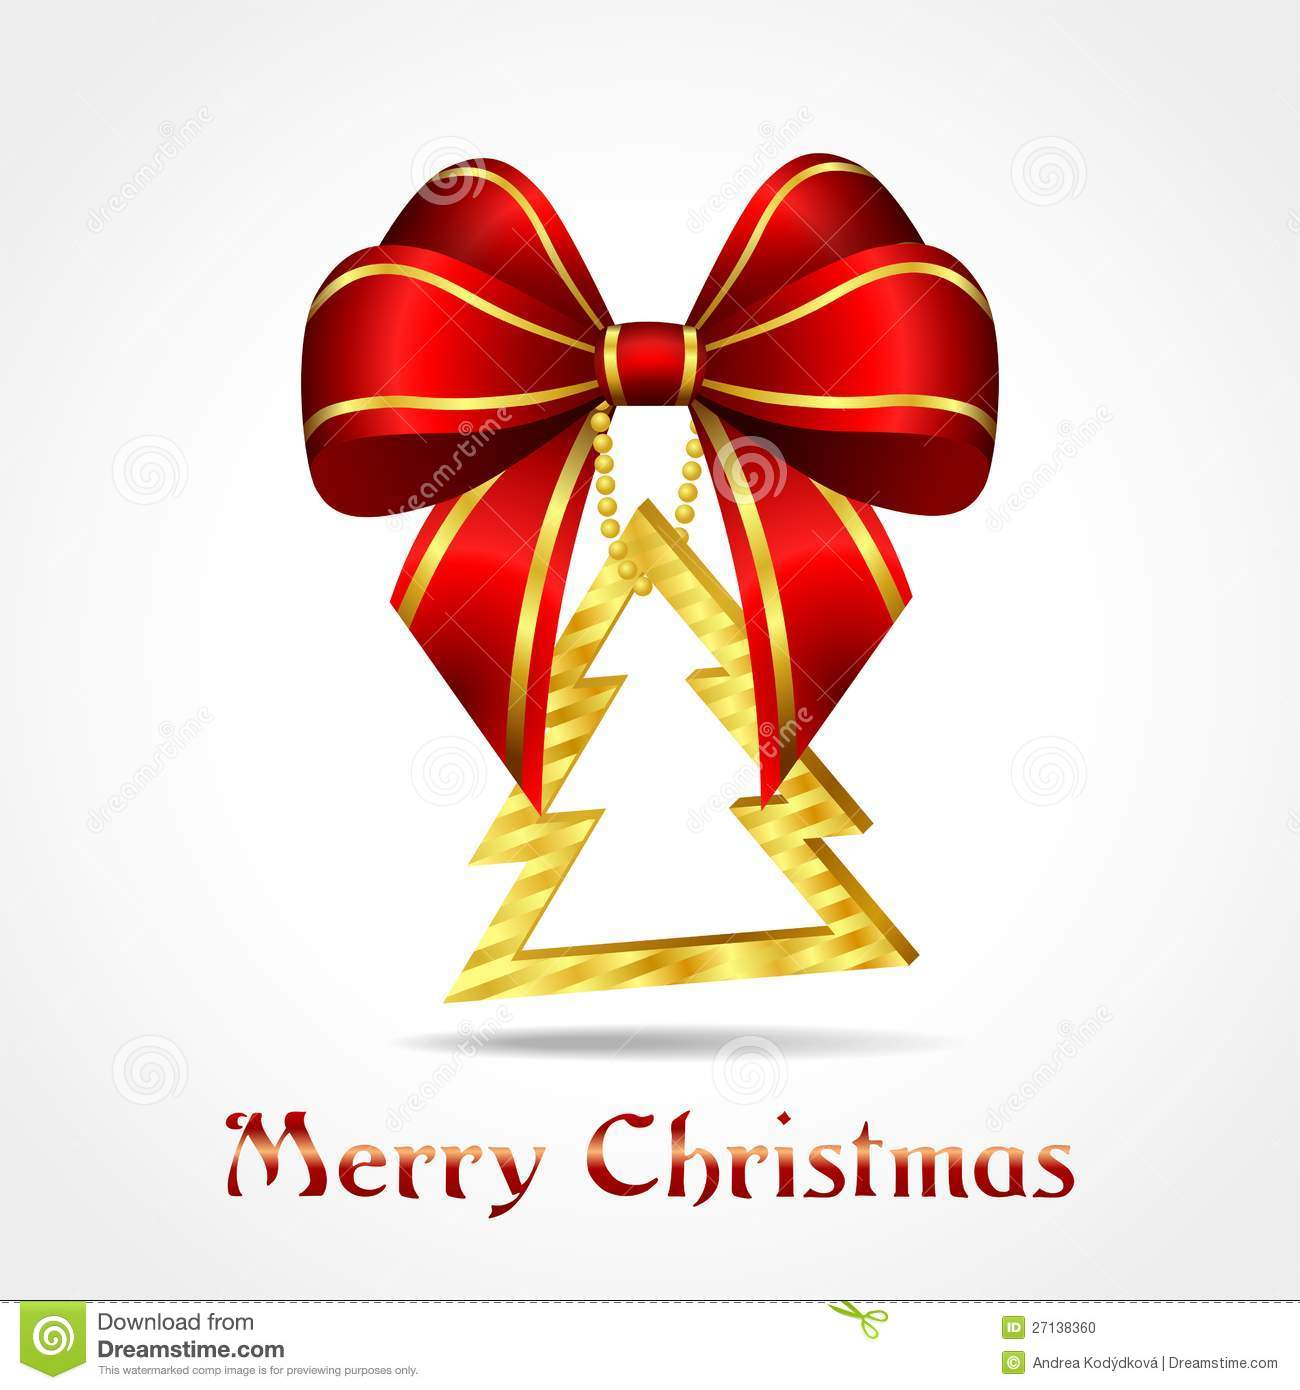 Christmas Tree With Red Ribbon: Golden Christmas Decoration